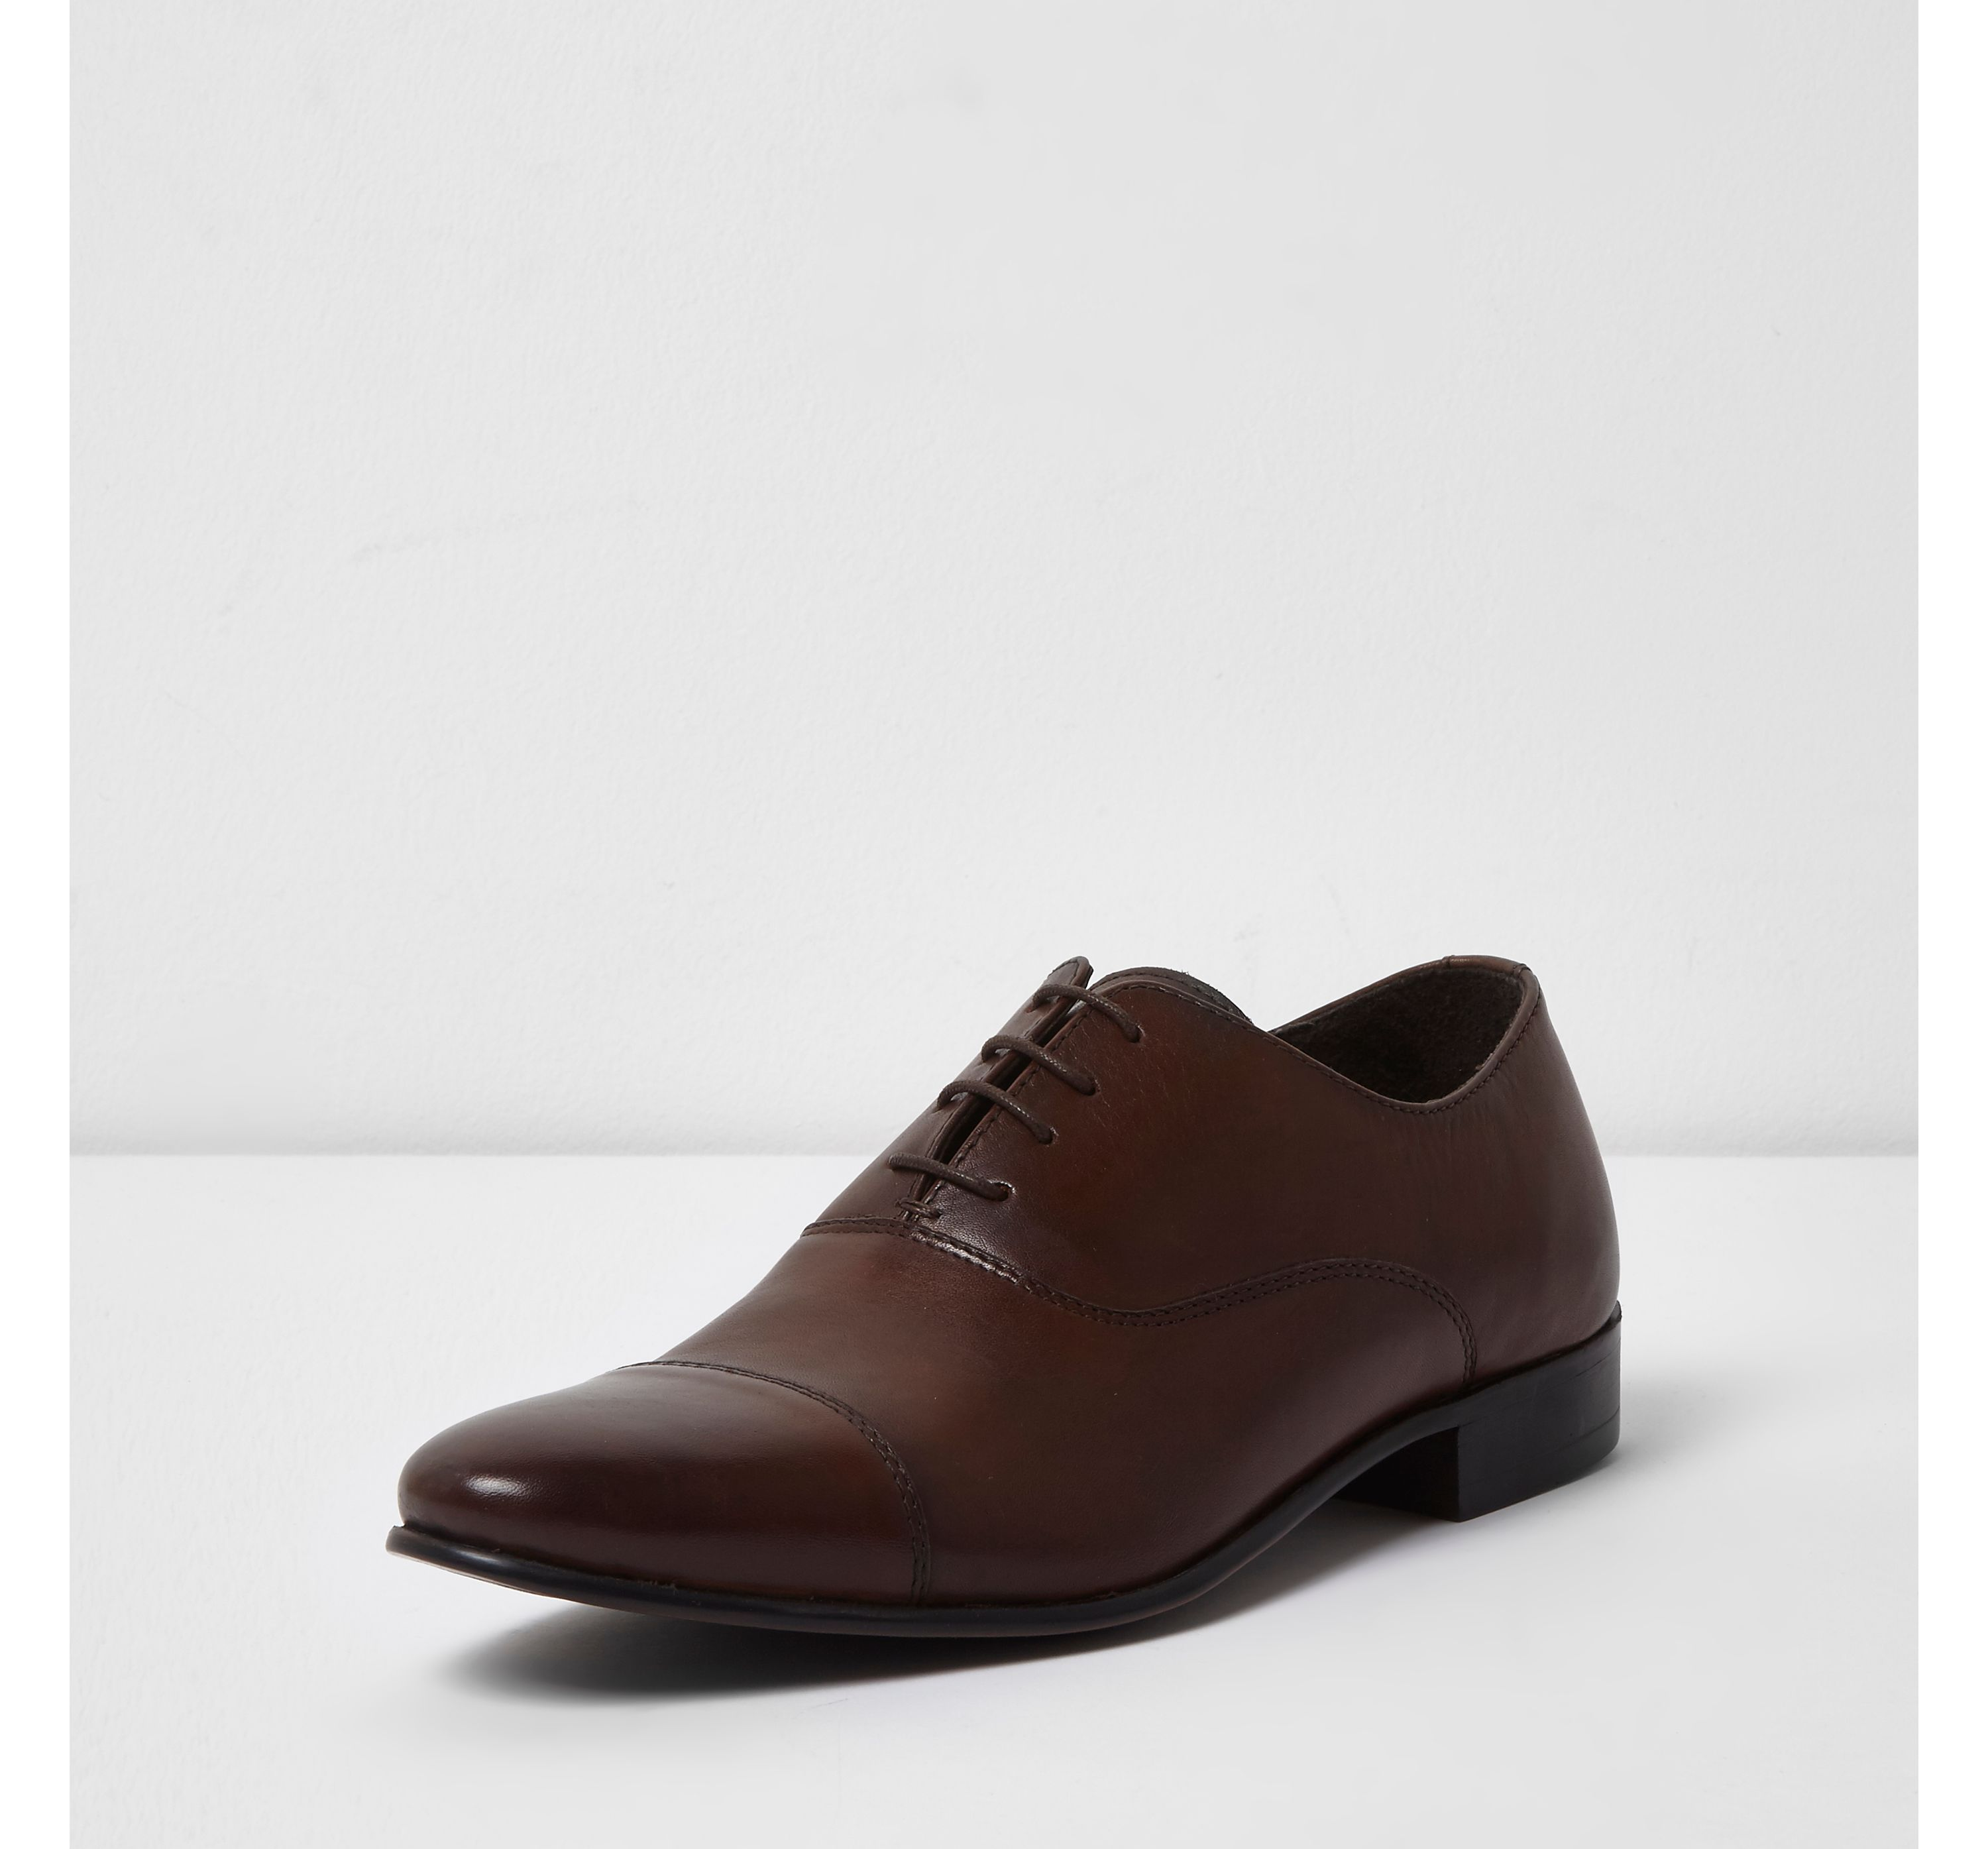 River Island Mens Dark Brown leather toe cap Oxford shoes